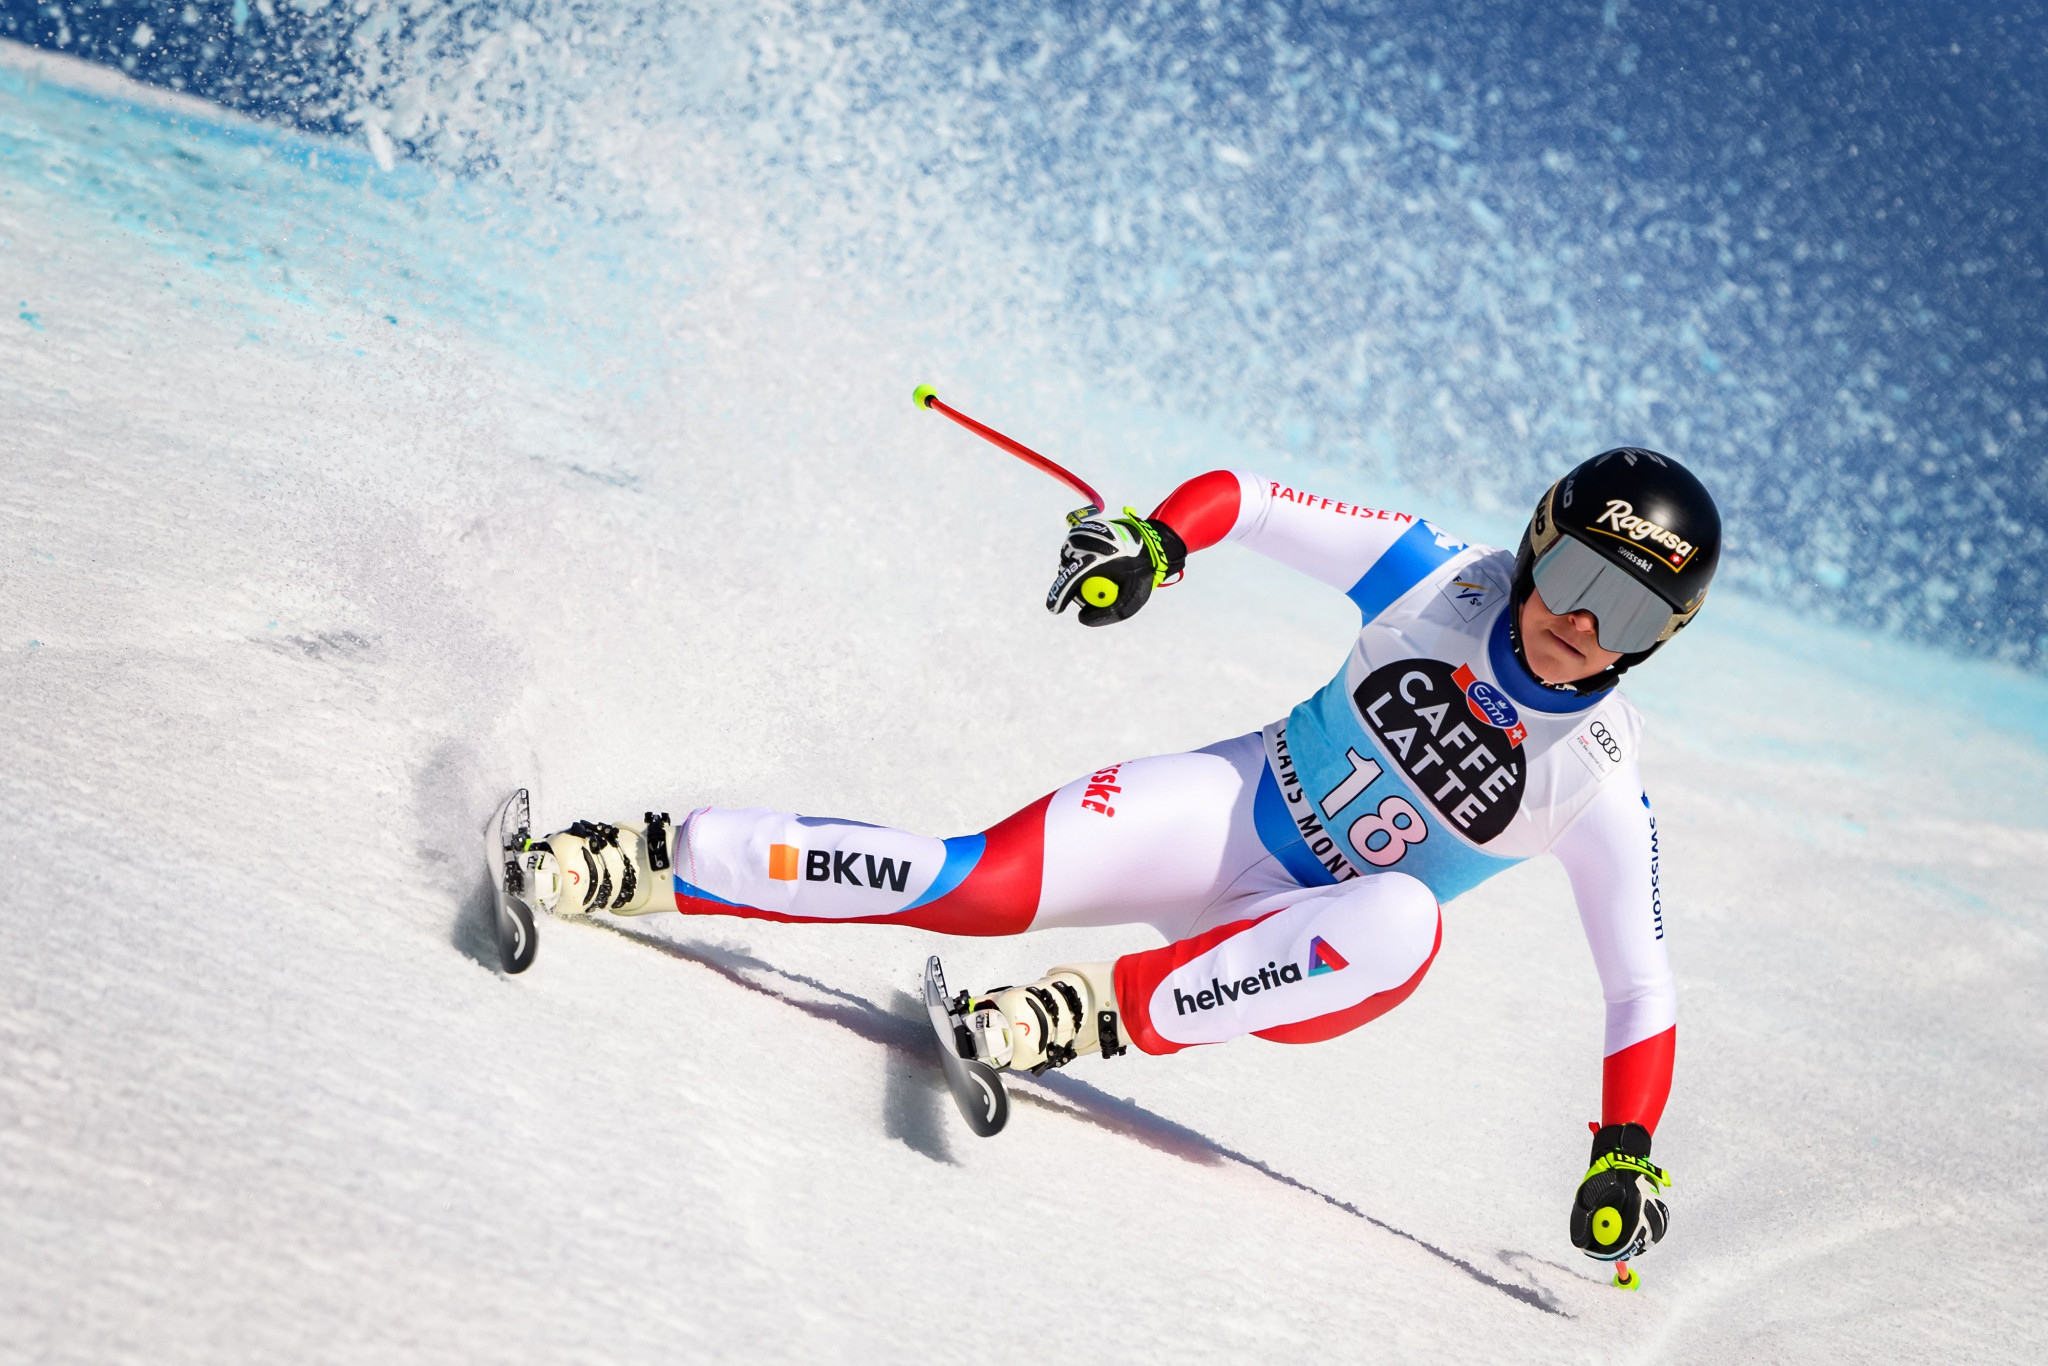 Lara Gut-Behrami led a Swiss one-two in the women's FIS Alpine Ski World Cup downhill in Crans-Montana ©Getty Images